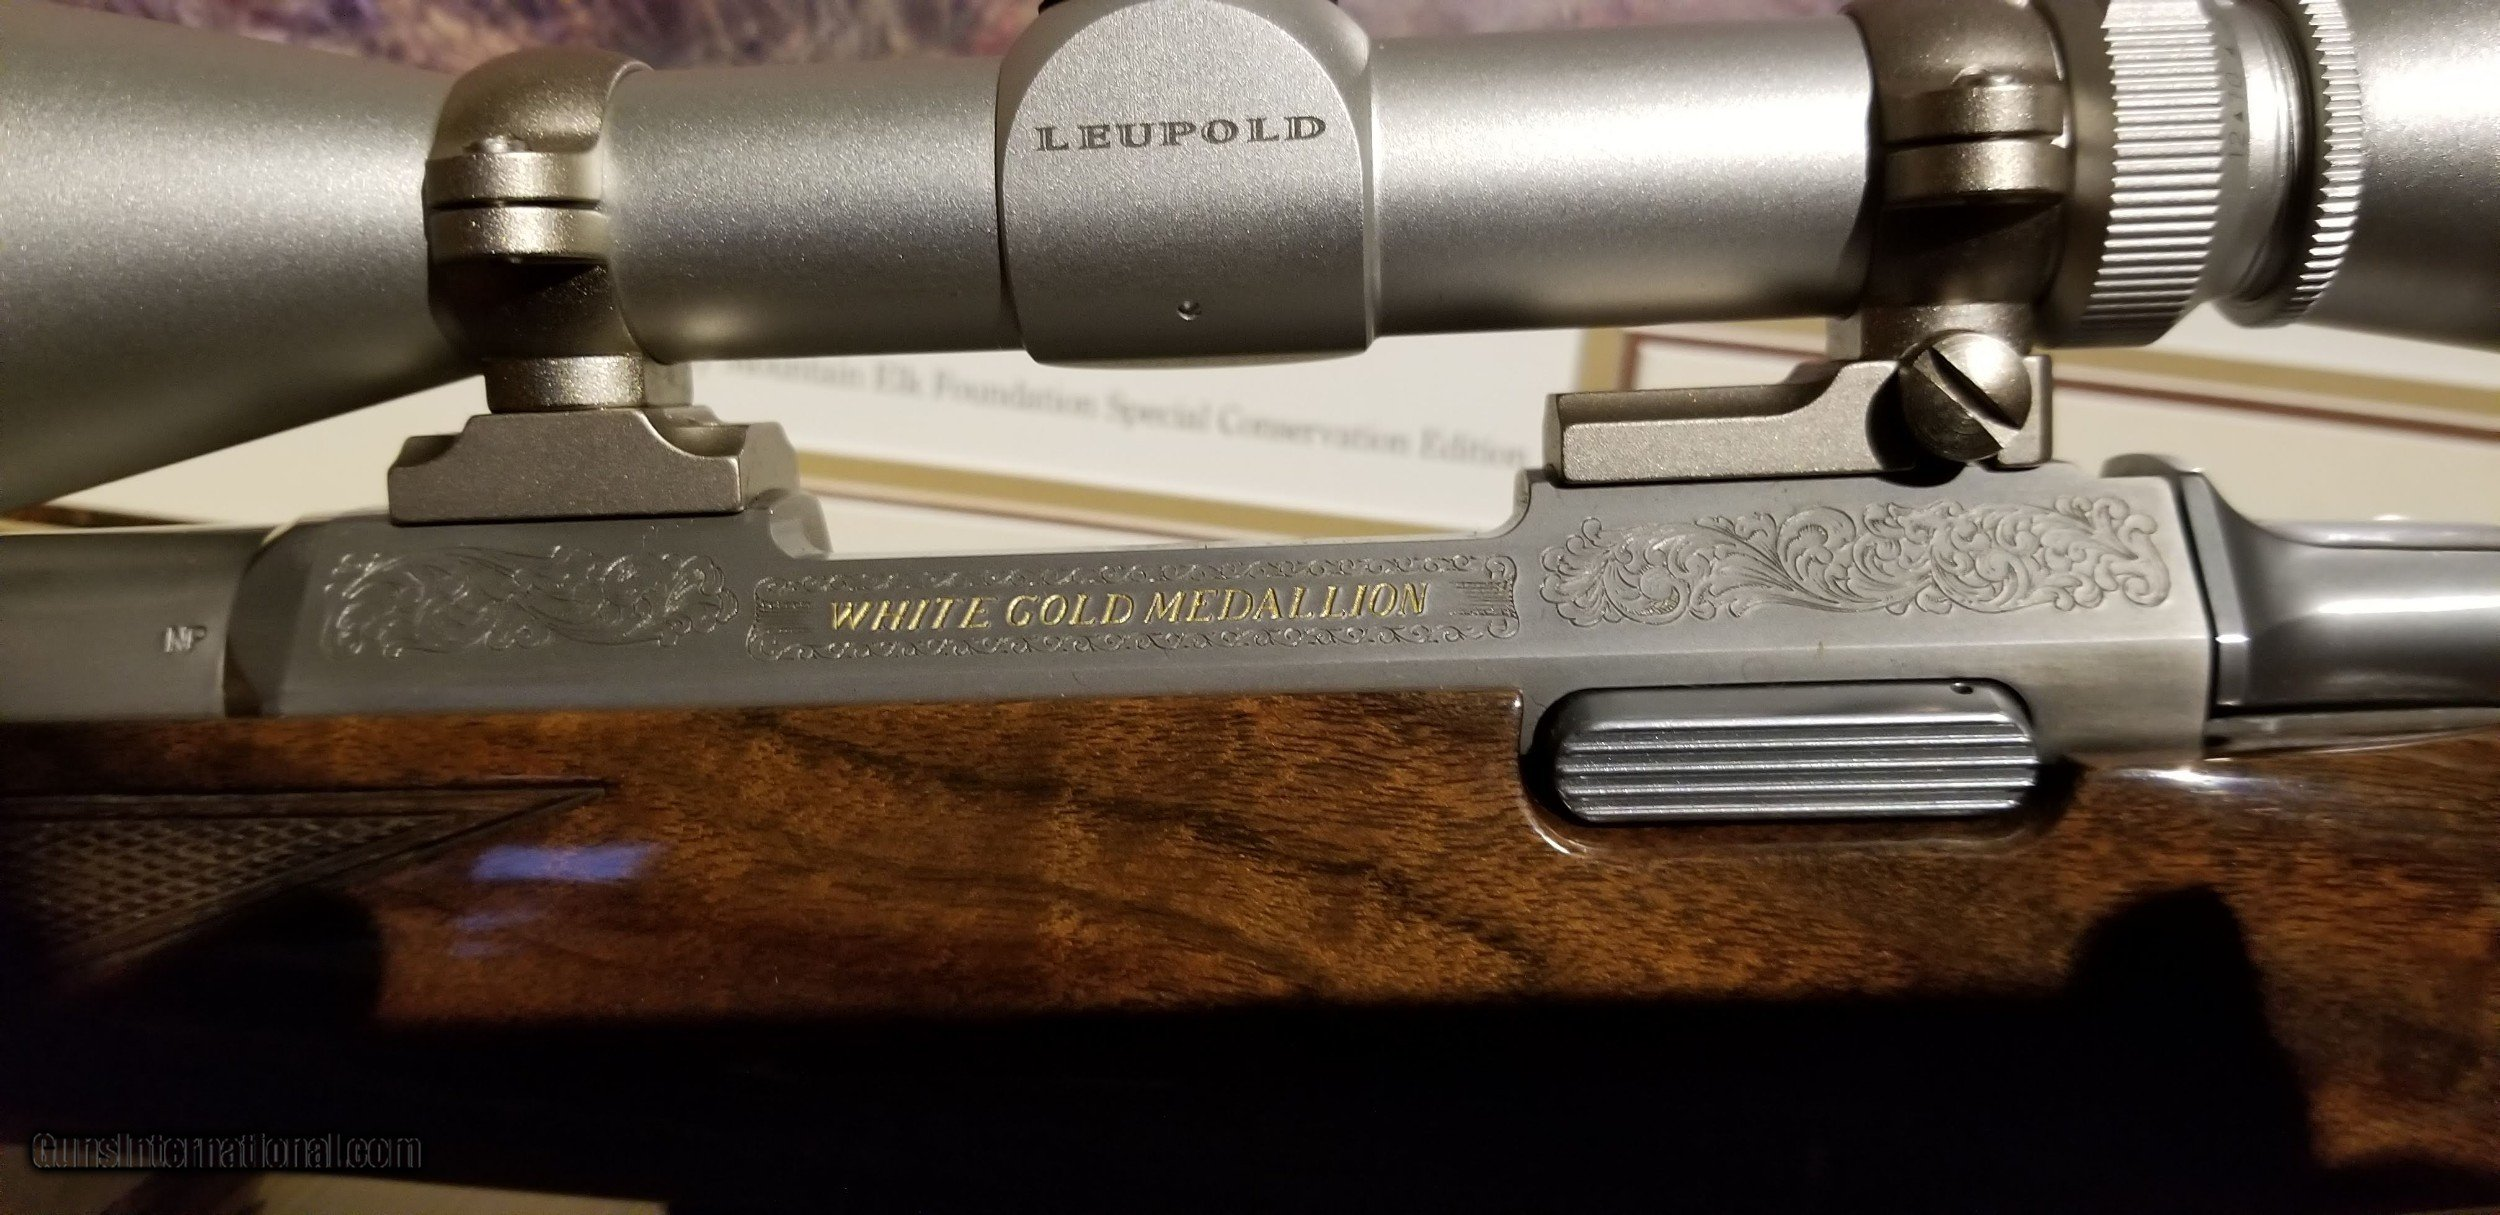 Browning White Gold Medallion A Bolt In 270 Wsm With Rare Octagon Barrel